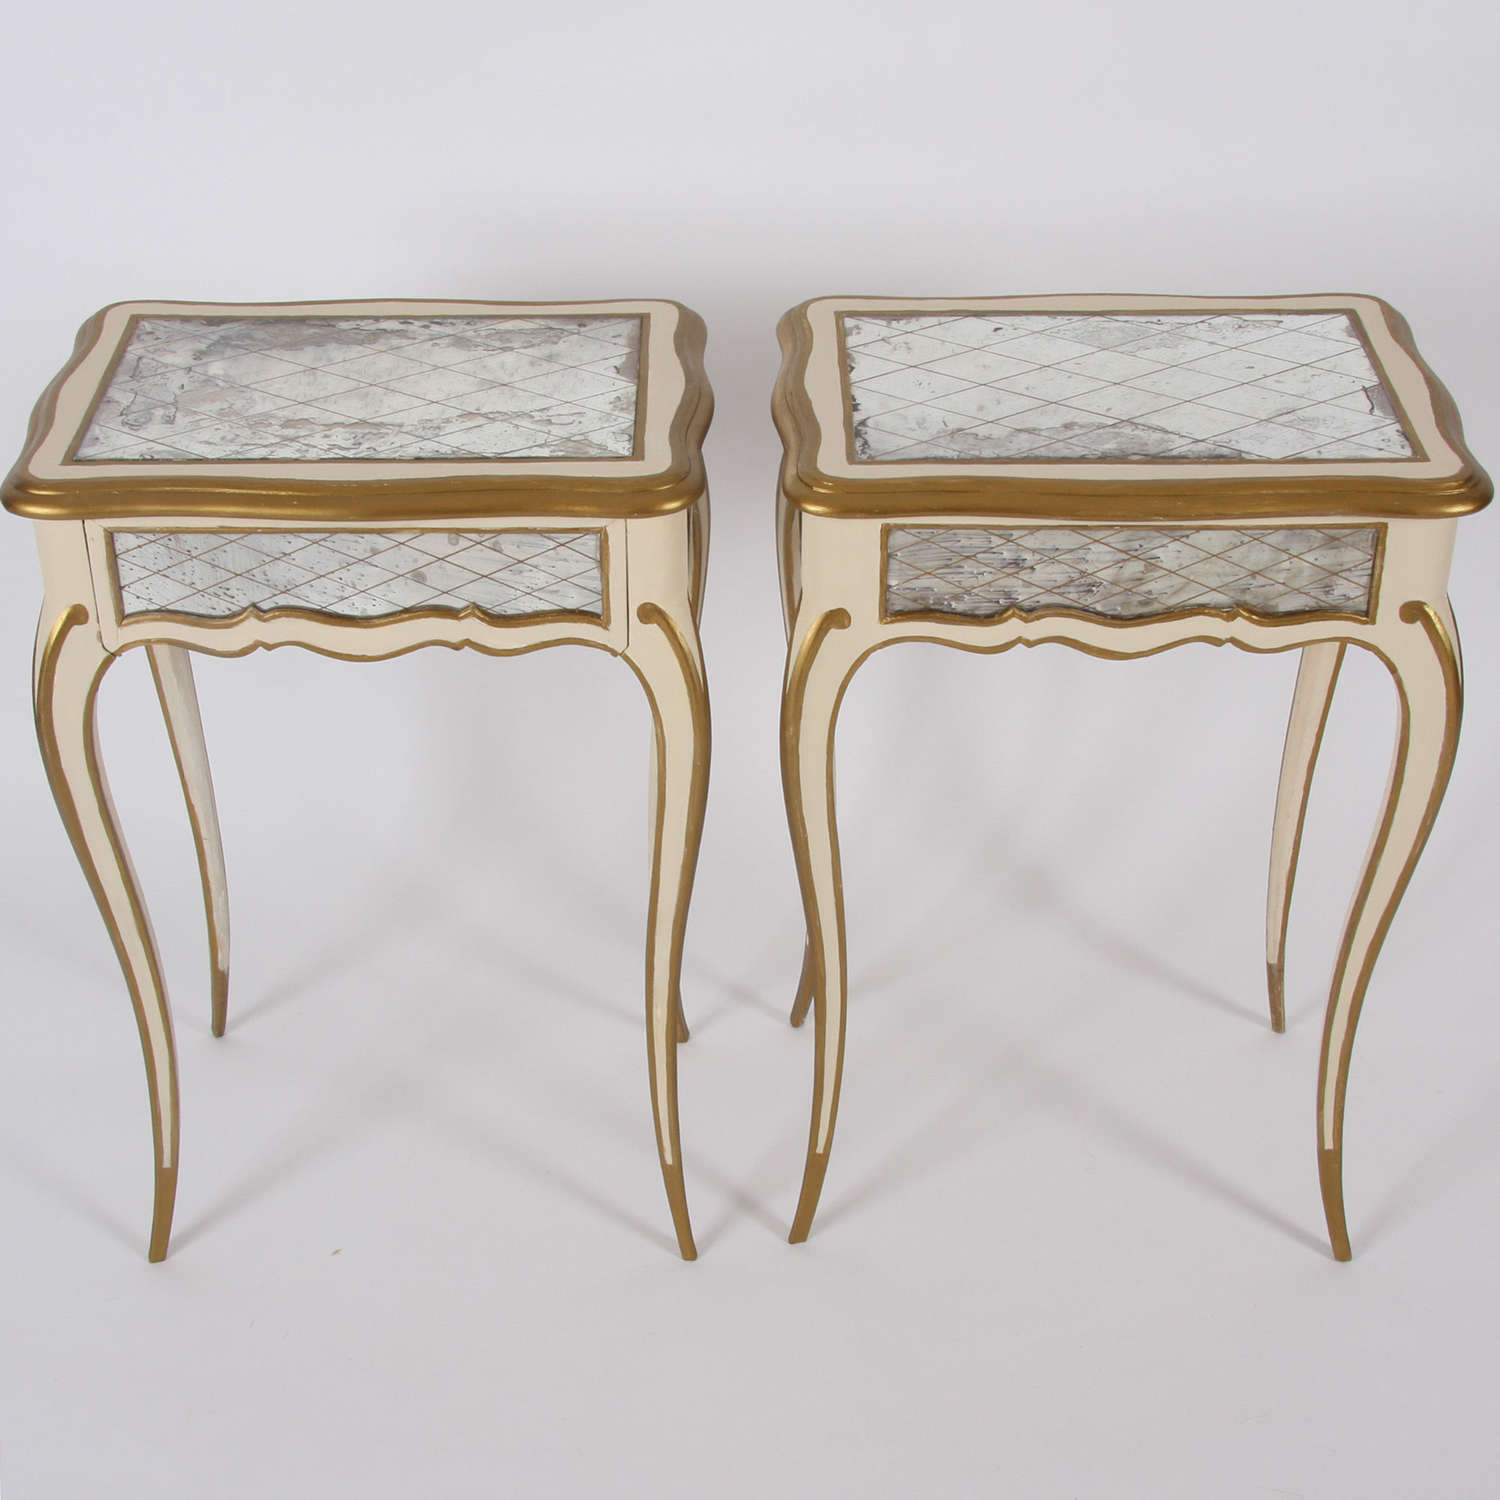 Pair of Italian 1950s Painted and Gilt Side Tables